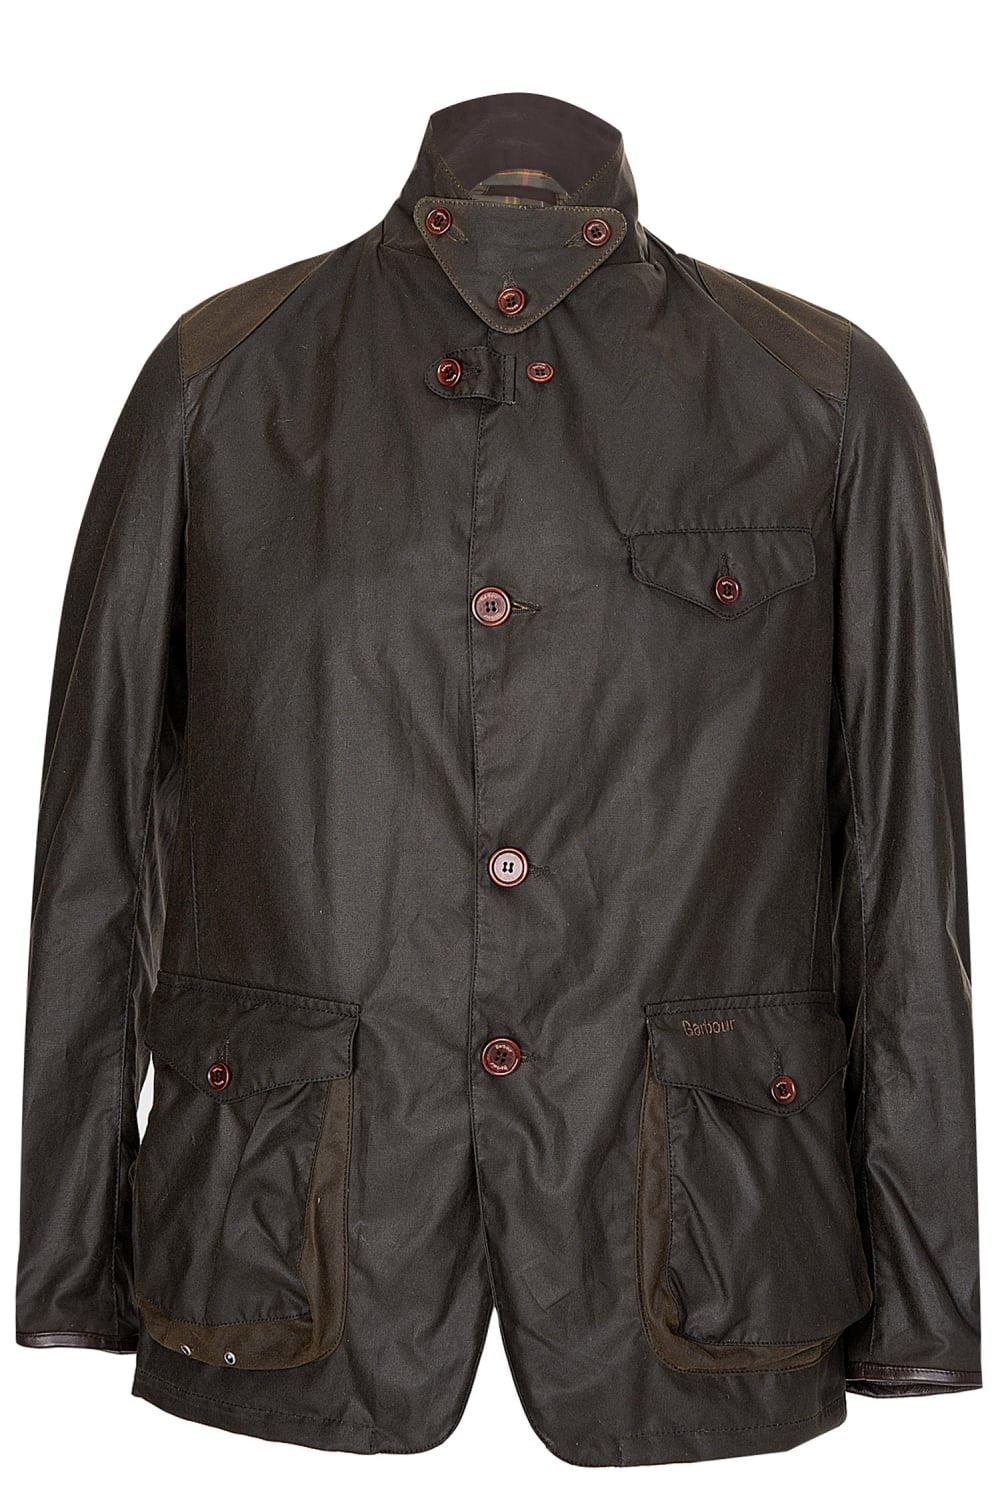 Barbour Beacon Sports Wax Jacket Olive